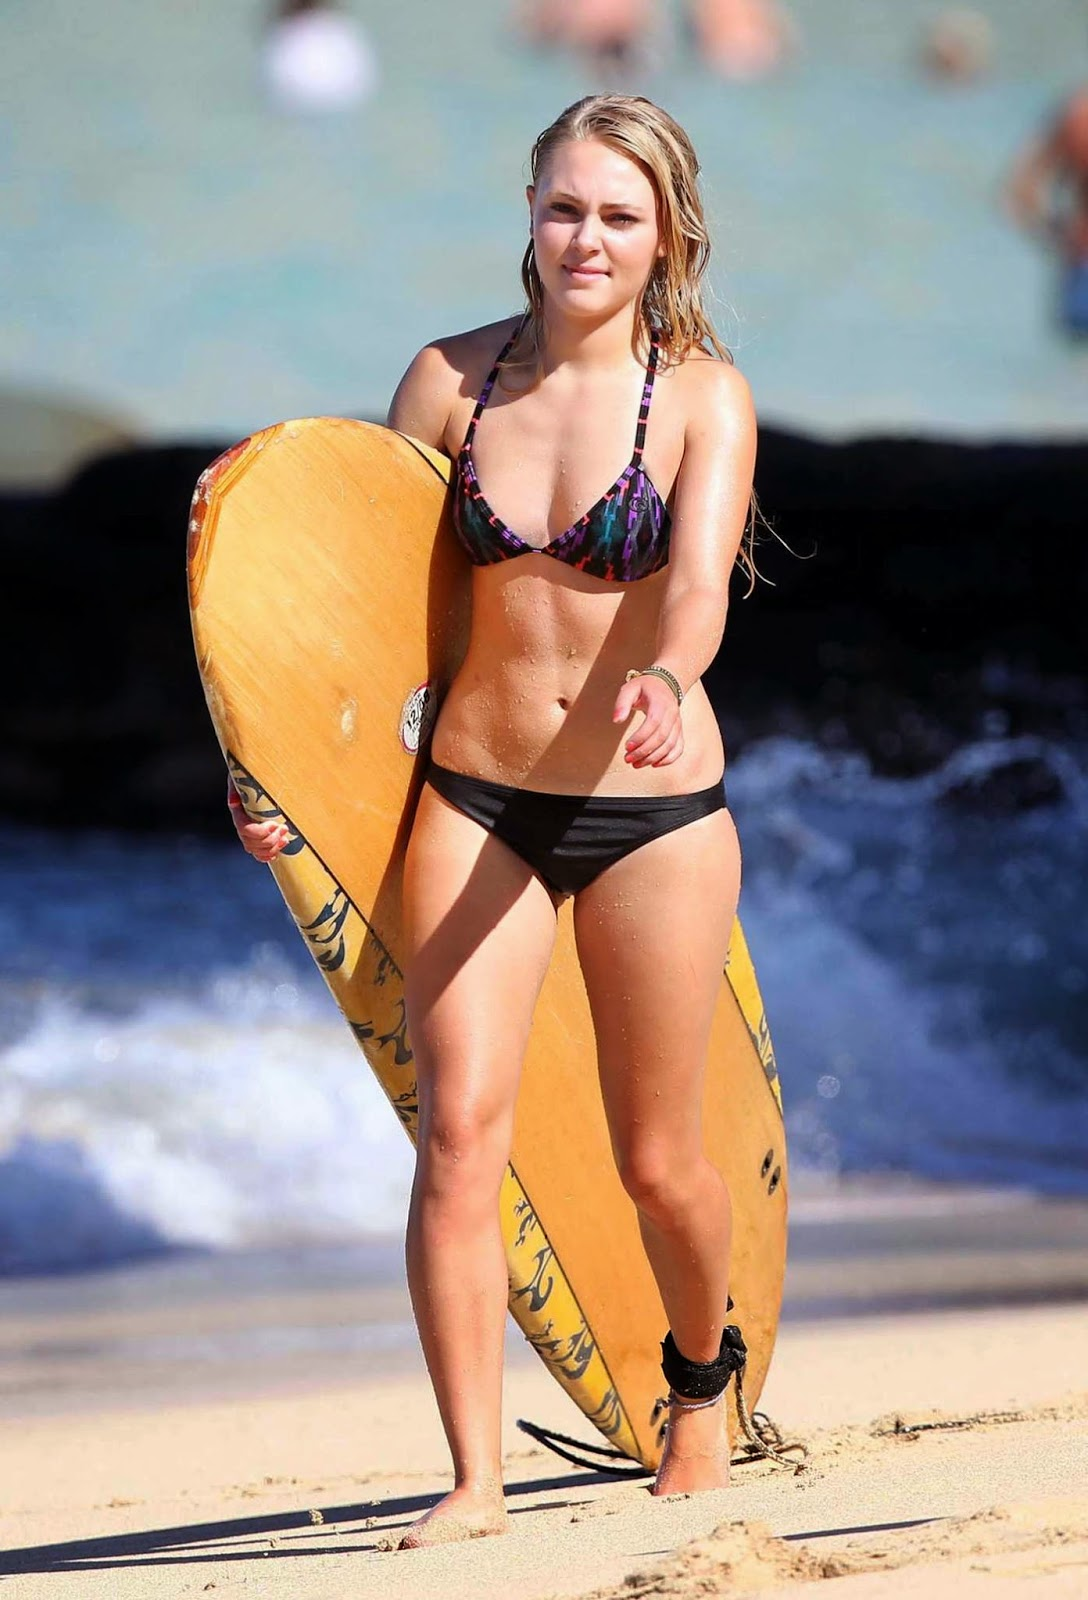 AnnaSophia Robb spotted paddle-boarding in a skimpy bikini in Hawaii